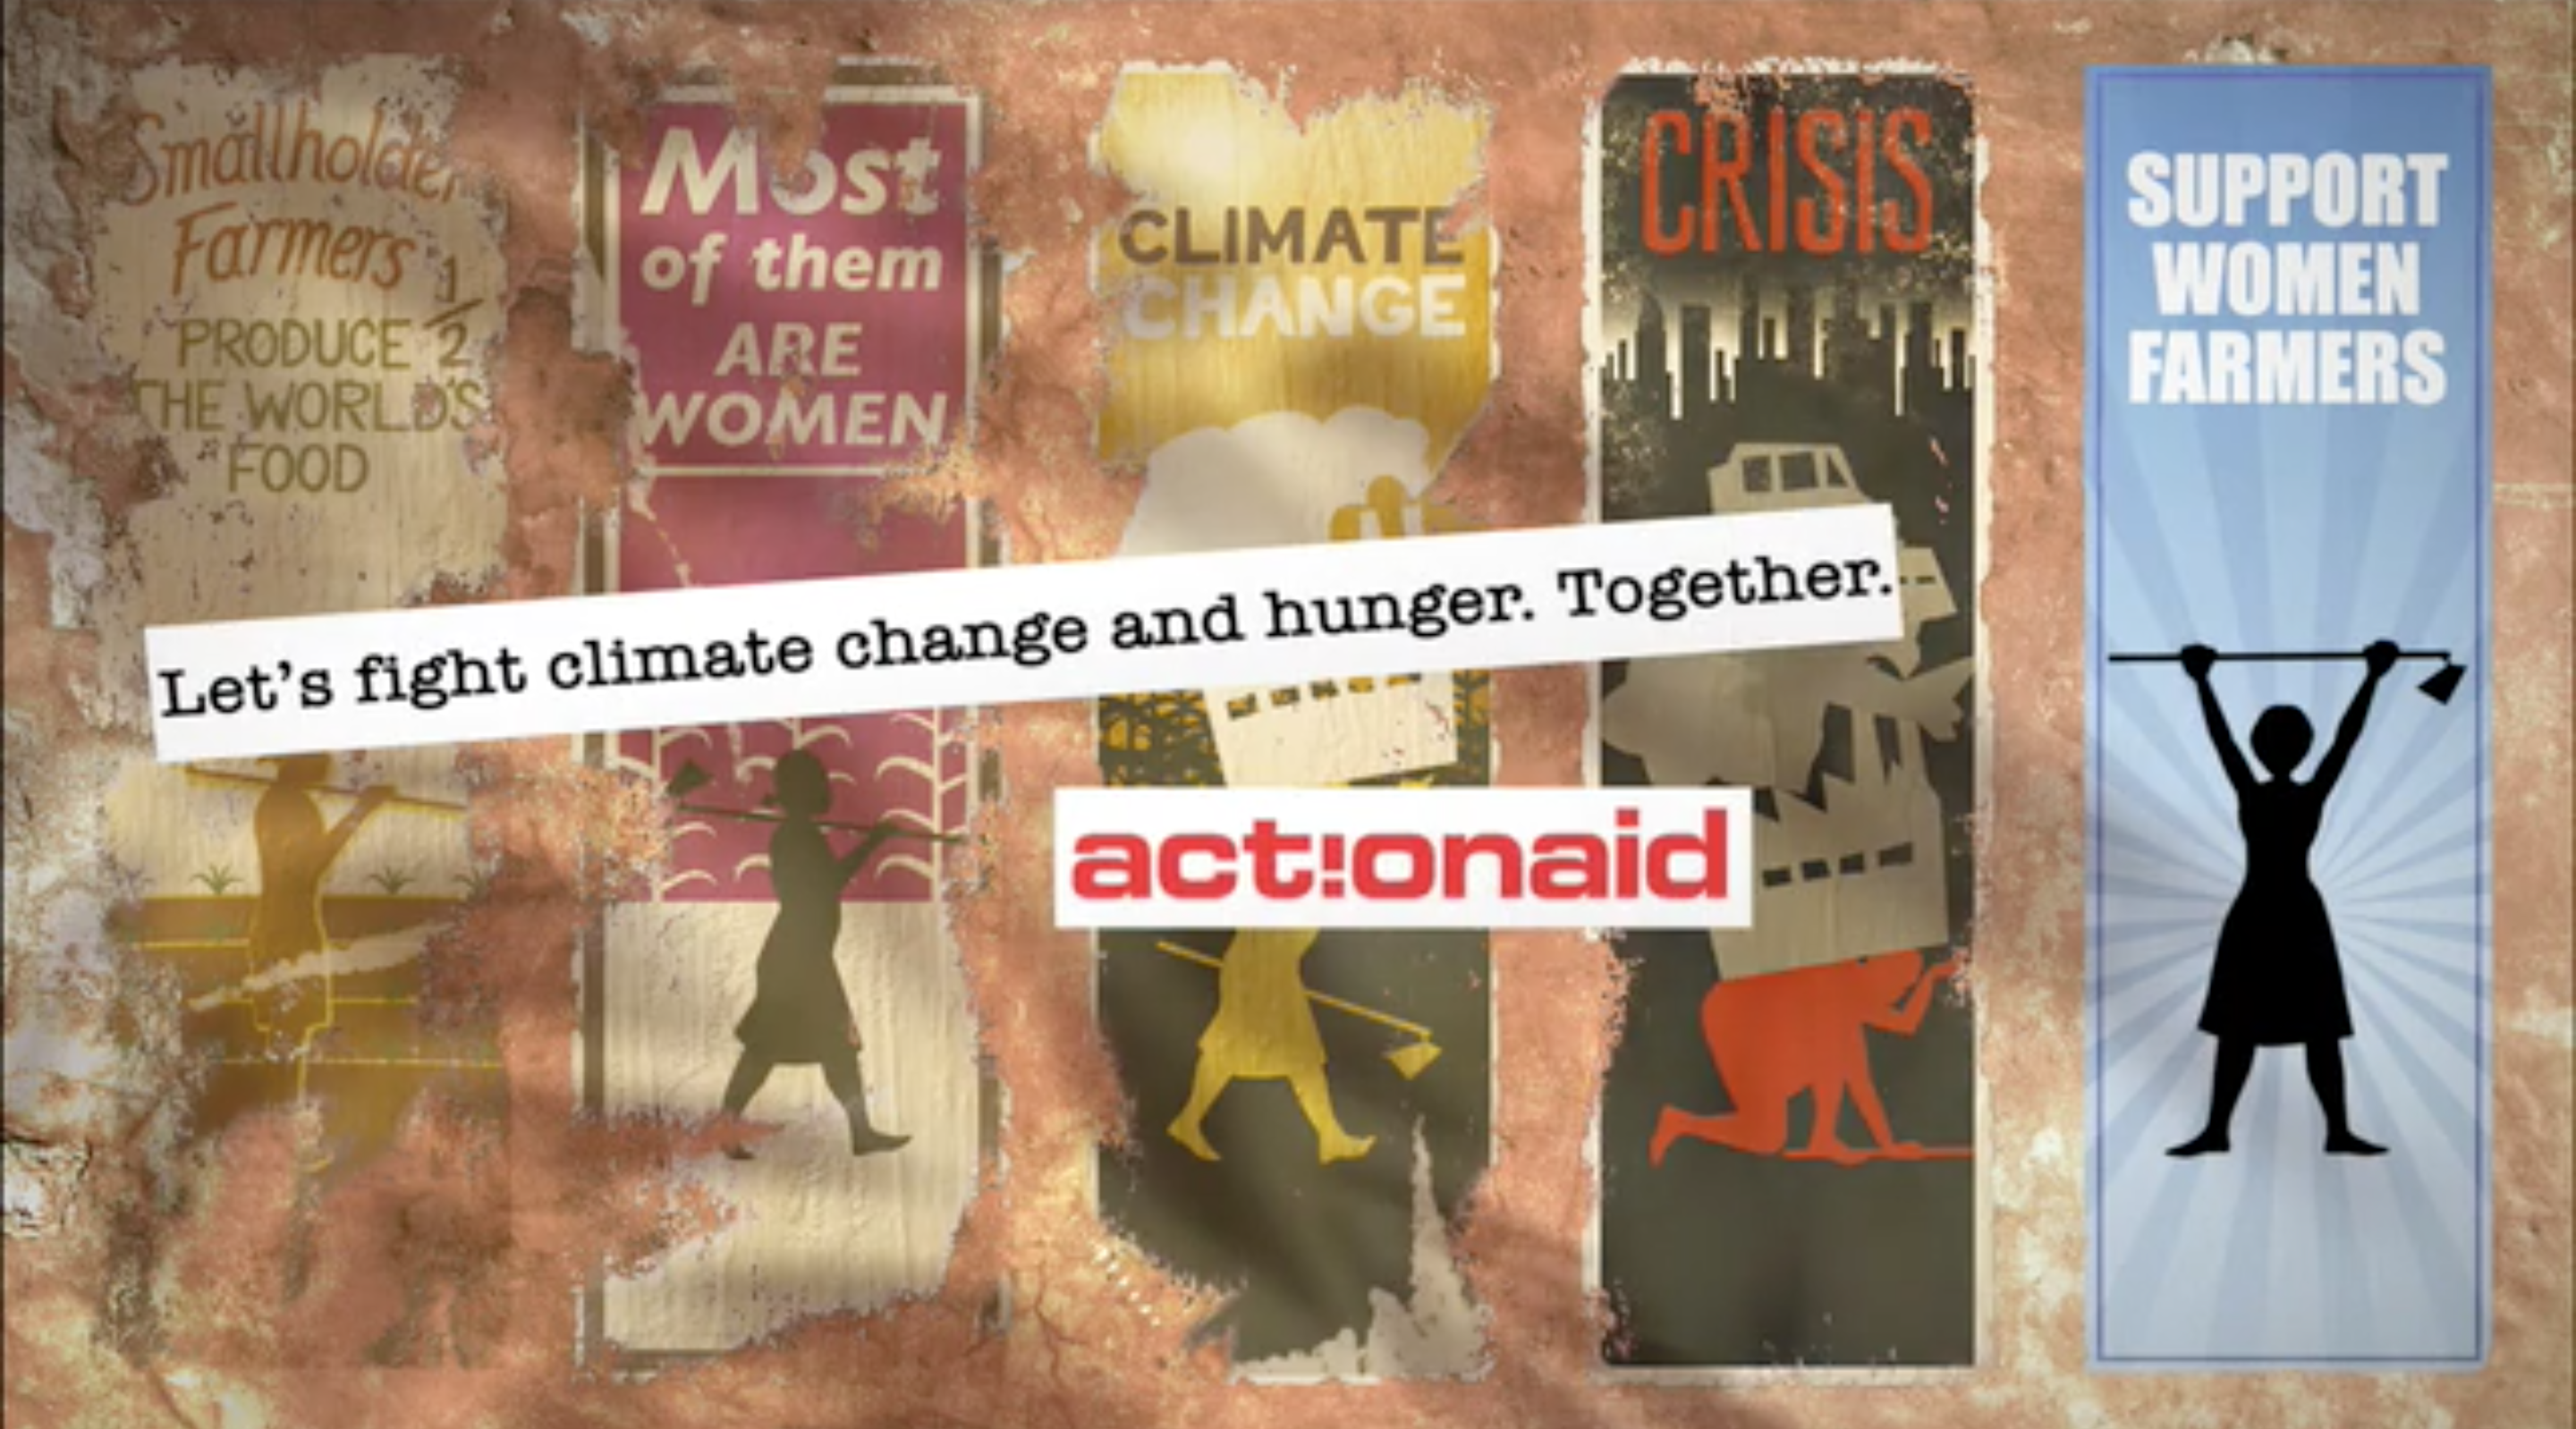 image of the video call to action